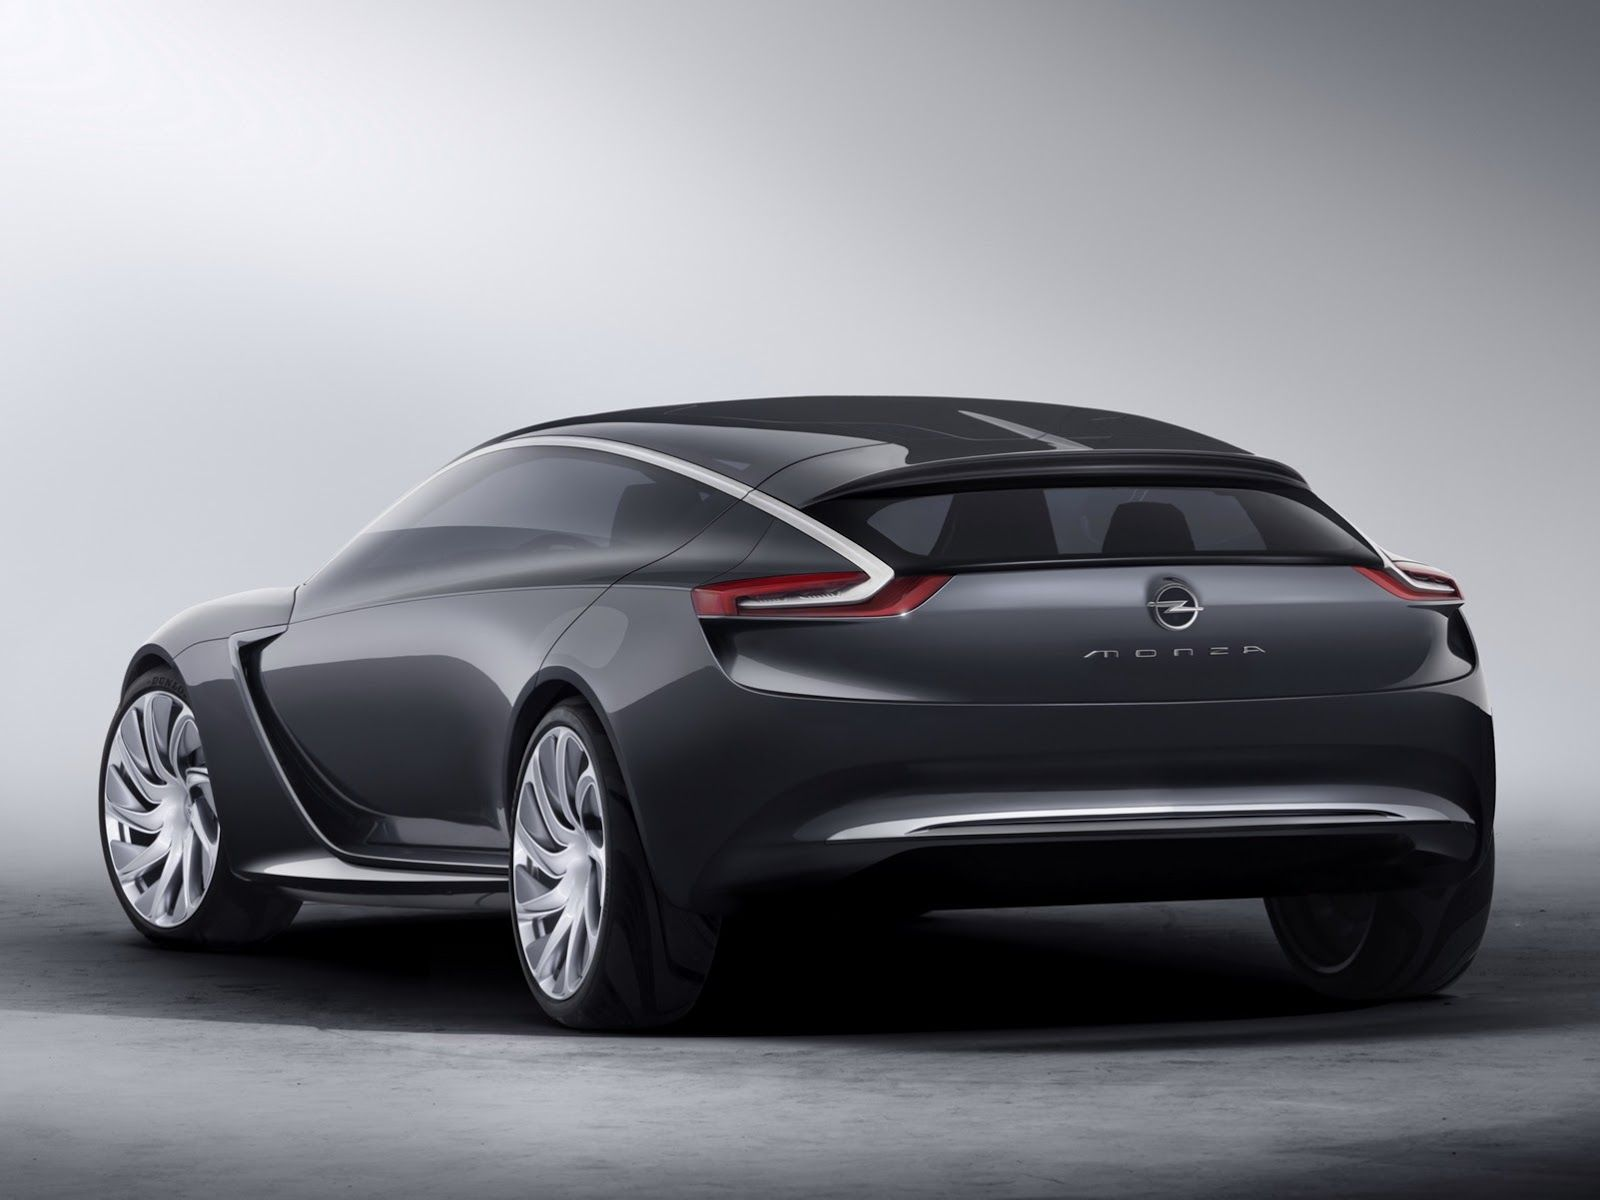 New Monza Concept Is Opel S Idea Of A Coupe With Wings For Doors Concept Car Design Concept Cars Opel